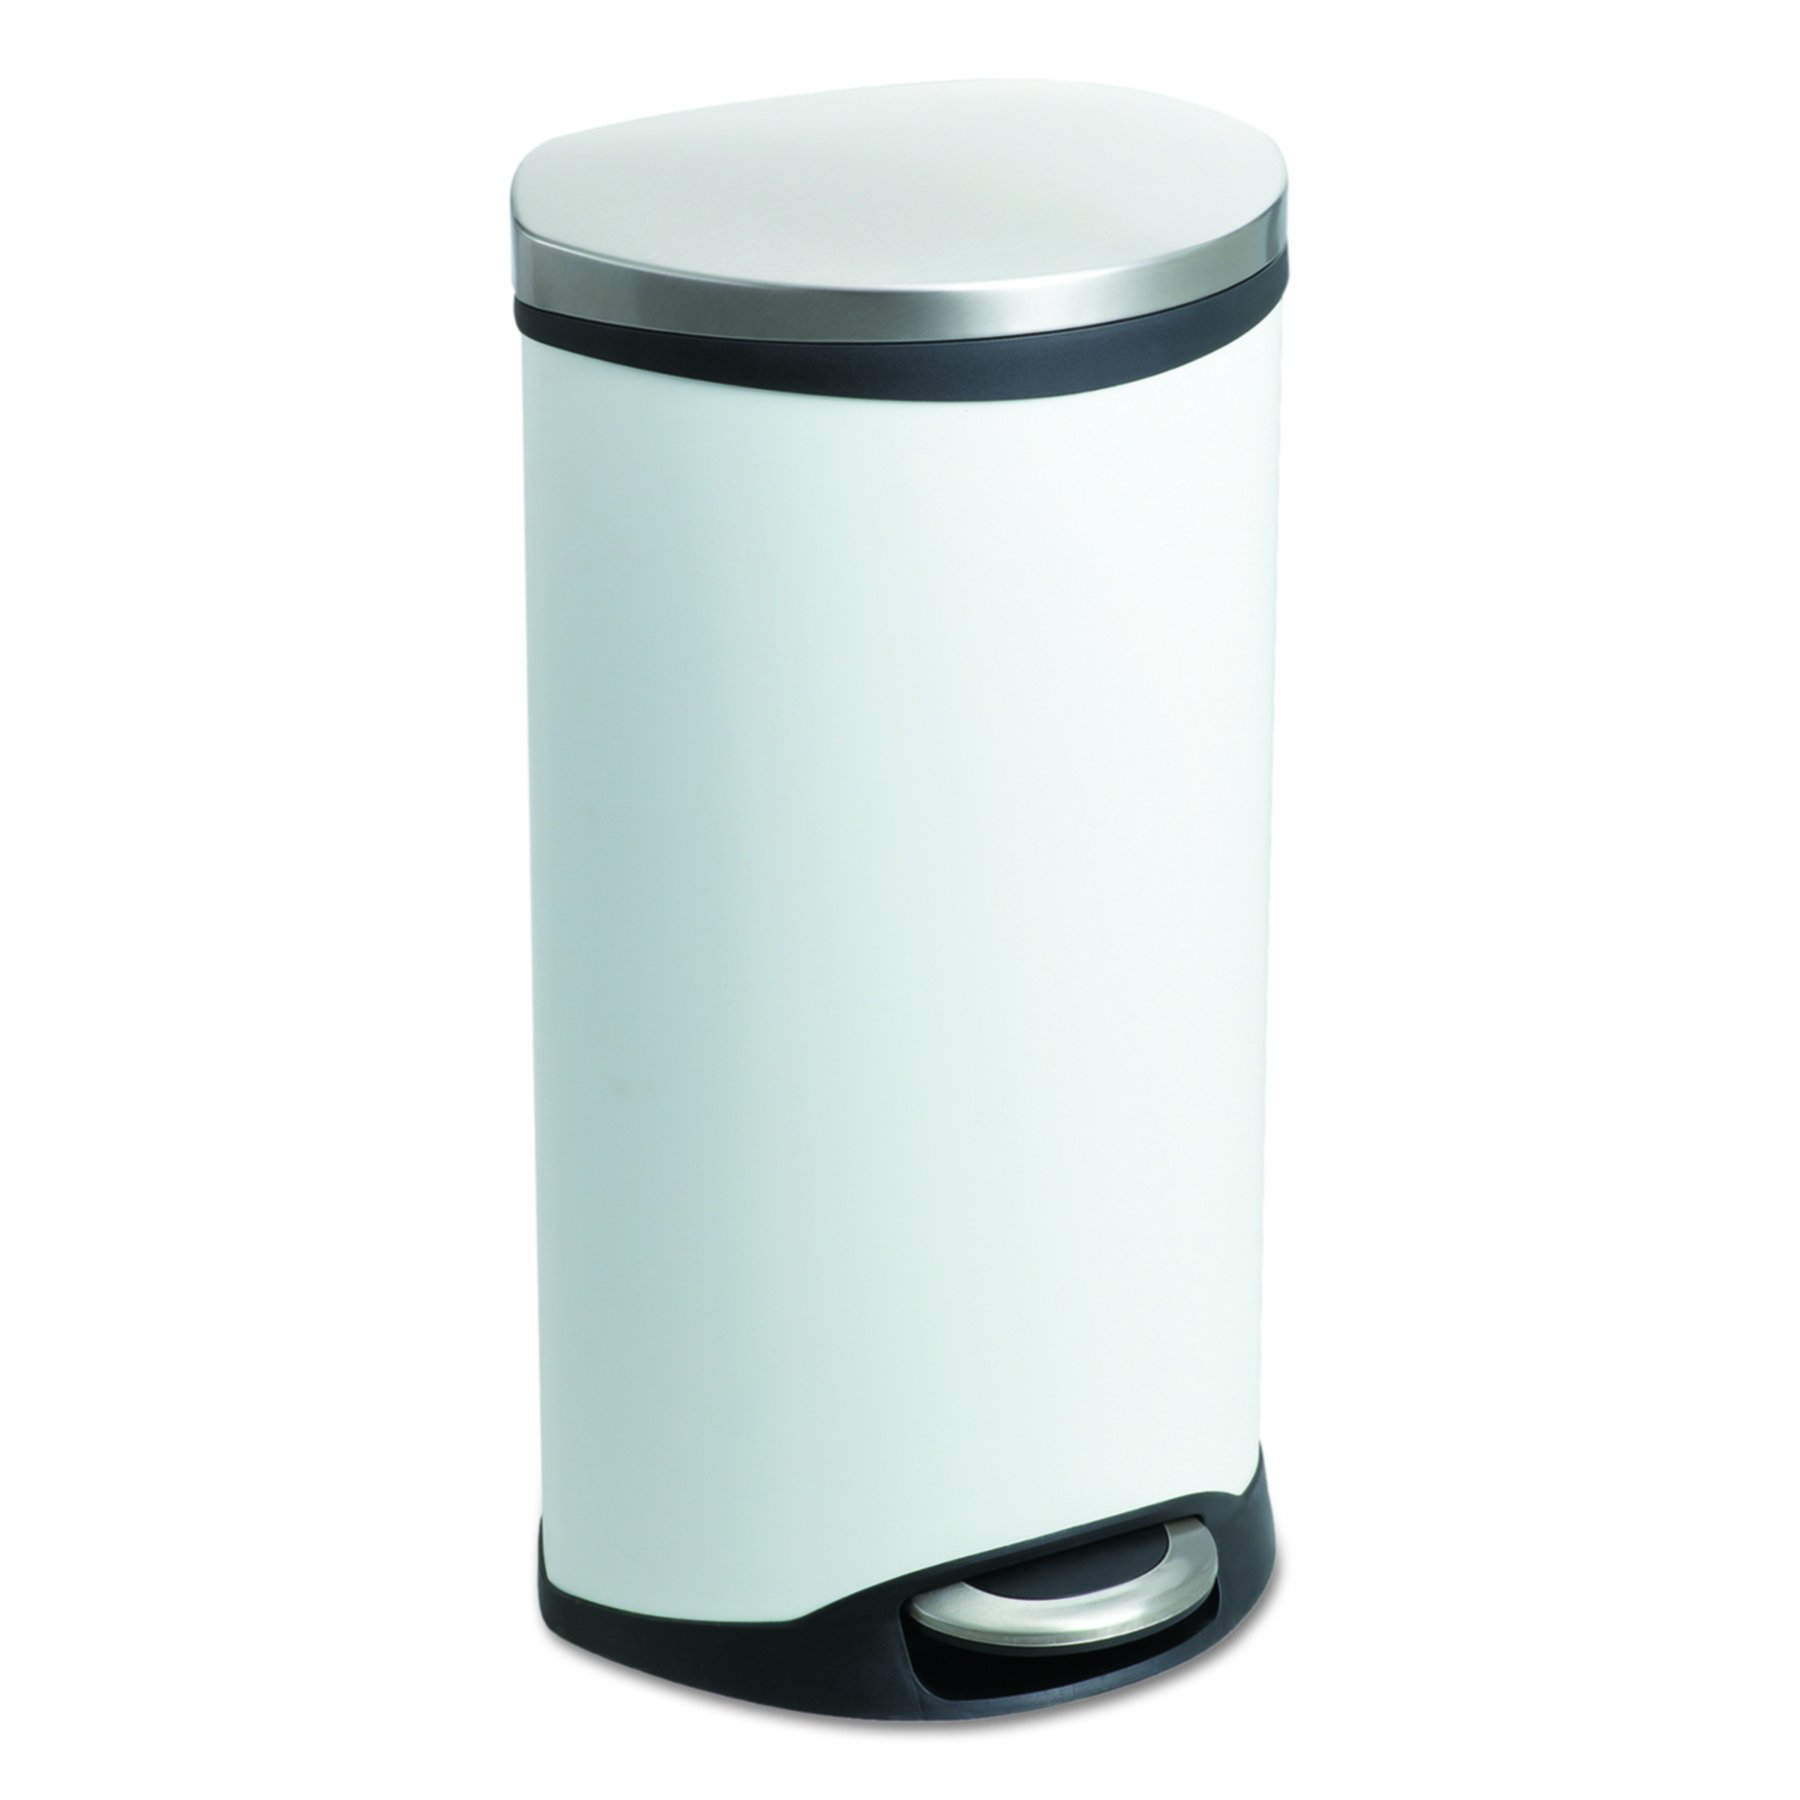 Safco Products 9902WH Ellipse Step-On Trash Can, 7 1/2-Gallon, White